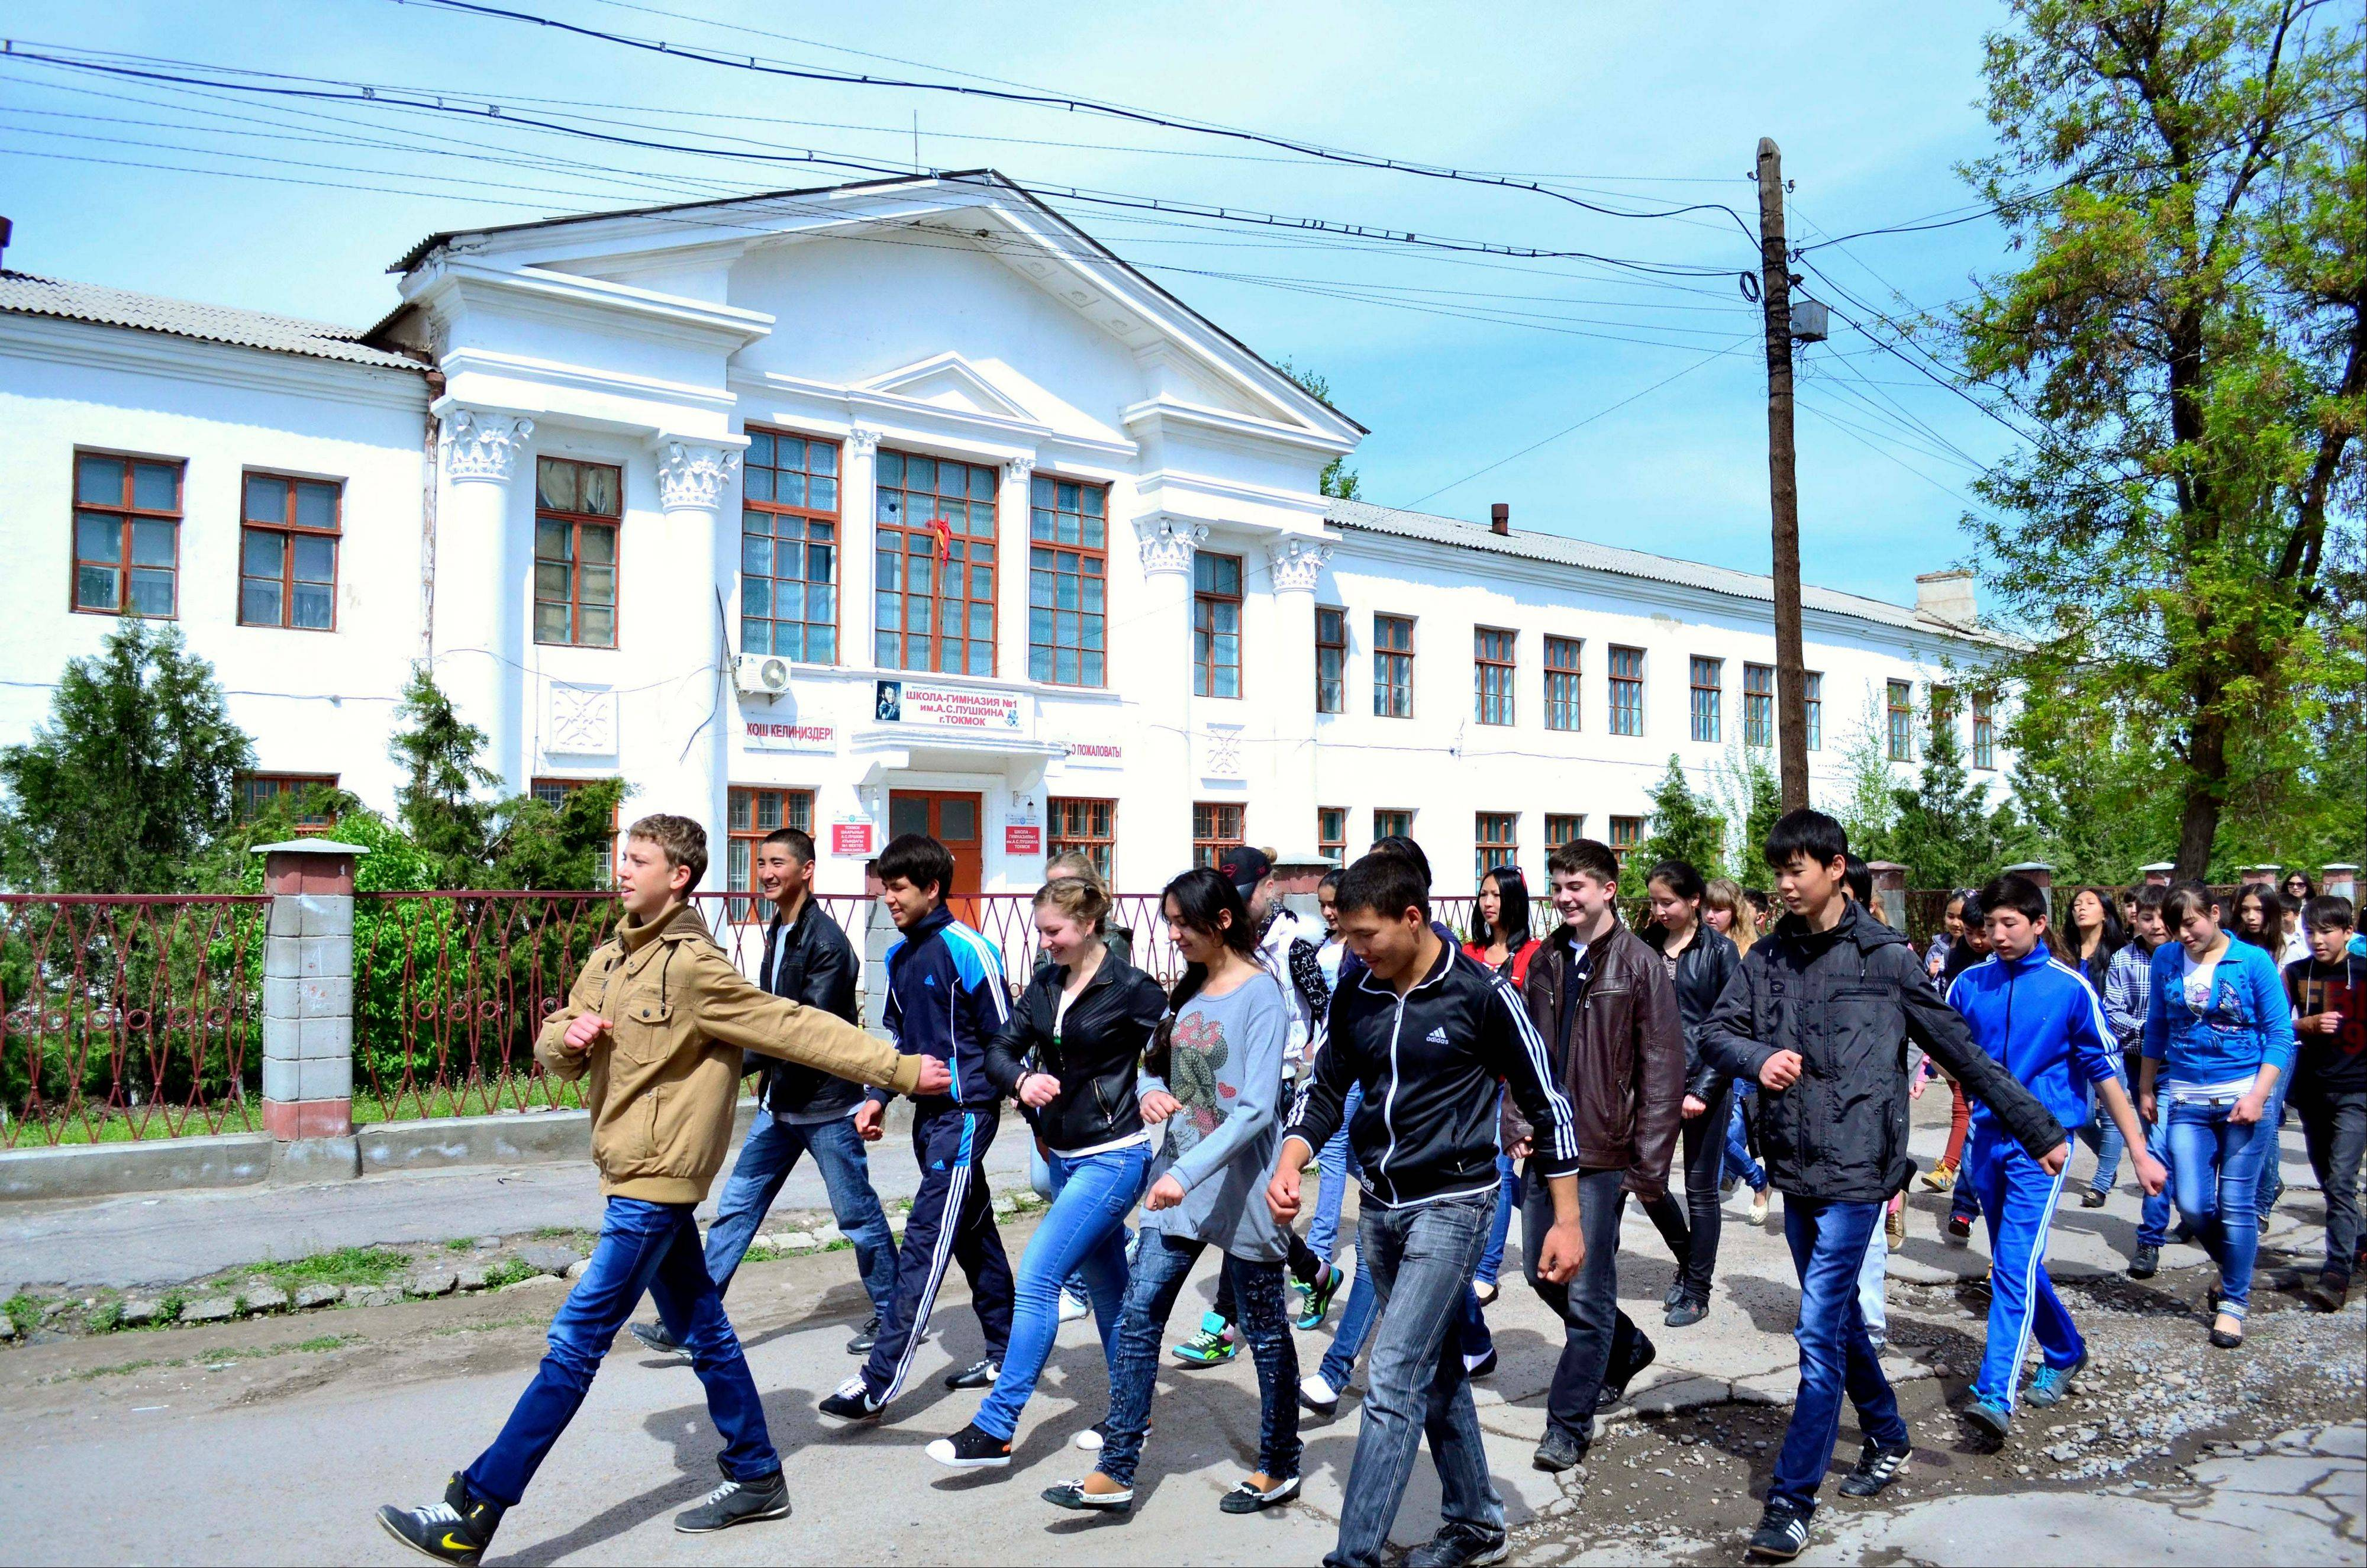 Schoolchildren march in front of a school where Tamerlan Tsarnaev, who was dubbed a suspect in the Boston Marathon bombings, studied, in a small Kyrgyz city Tokmok east of the country's capital of Bishkek, on Friday. Tamerlan Tsarnaev was an amateur boxer with muscular arms and enough brio to arrive at a sparring session without protective gear.